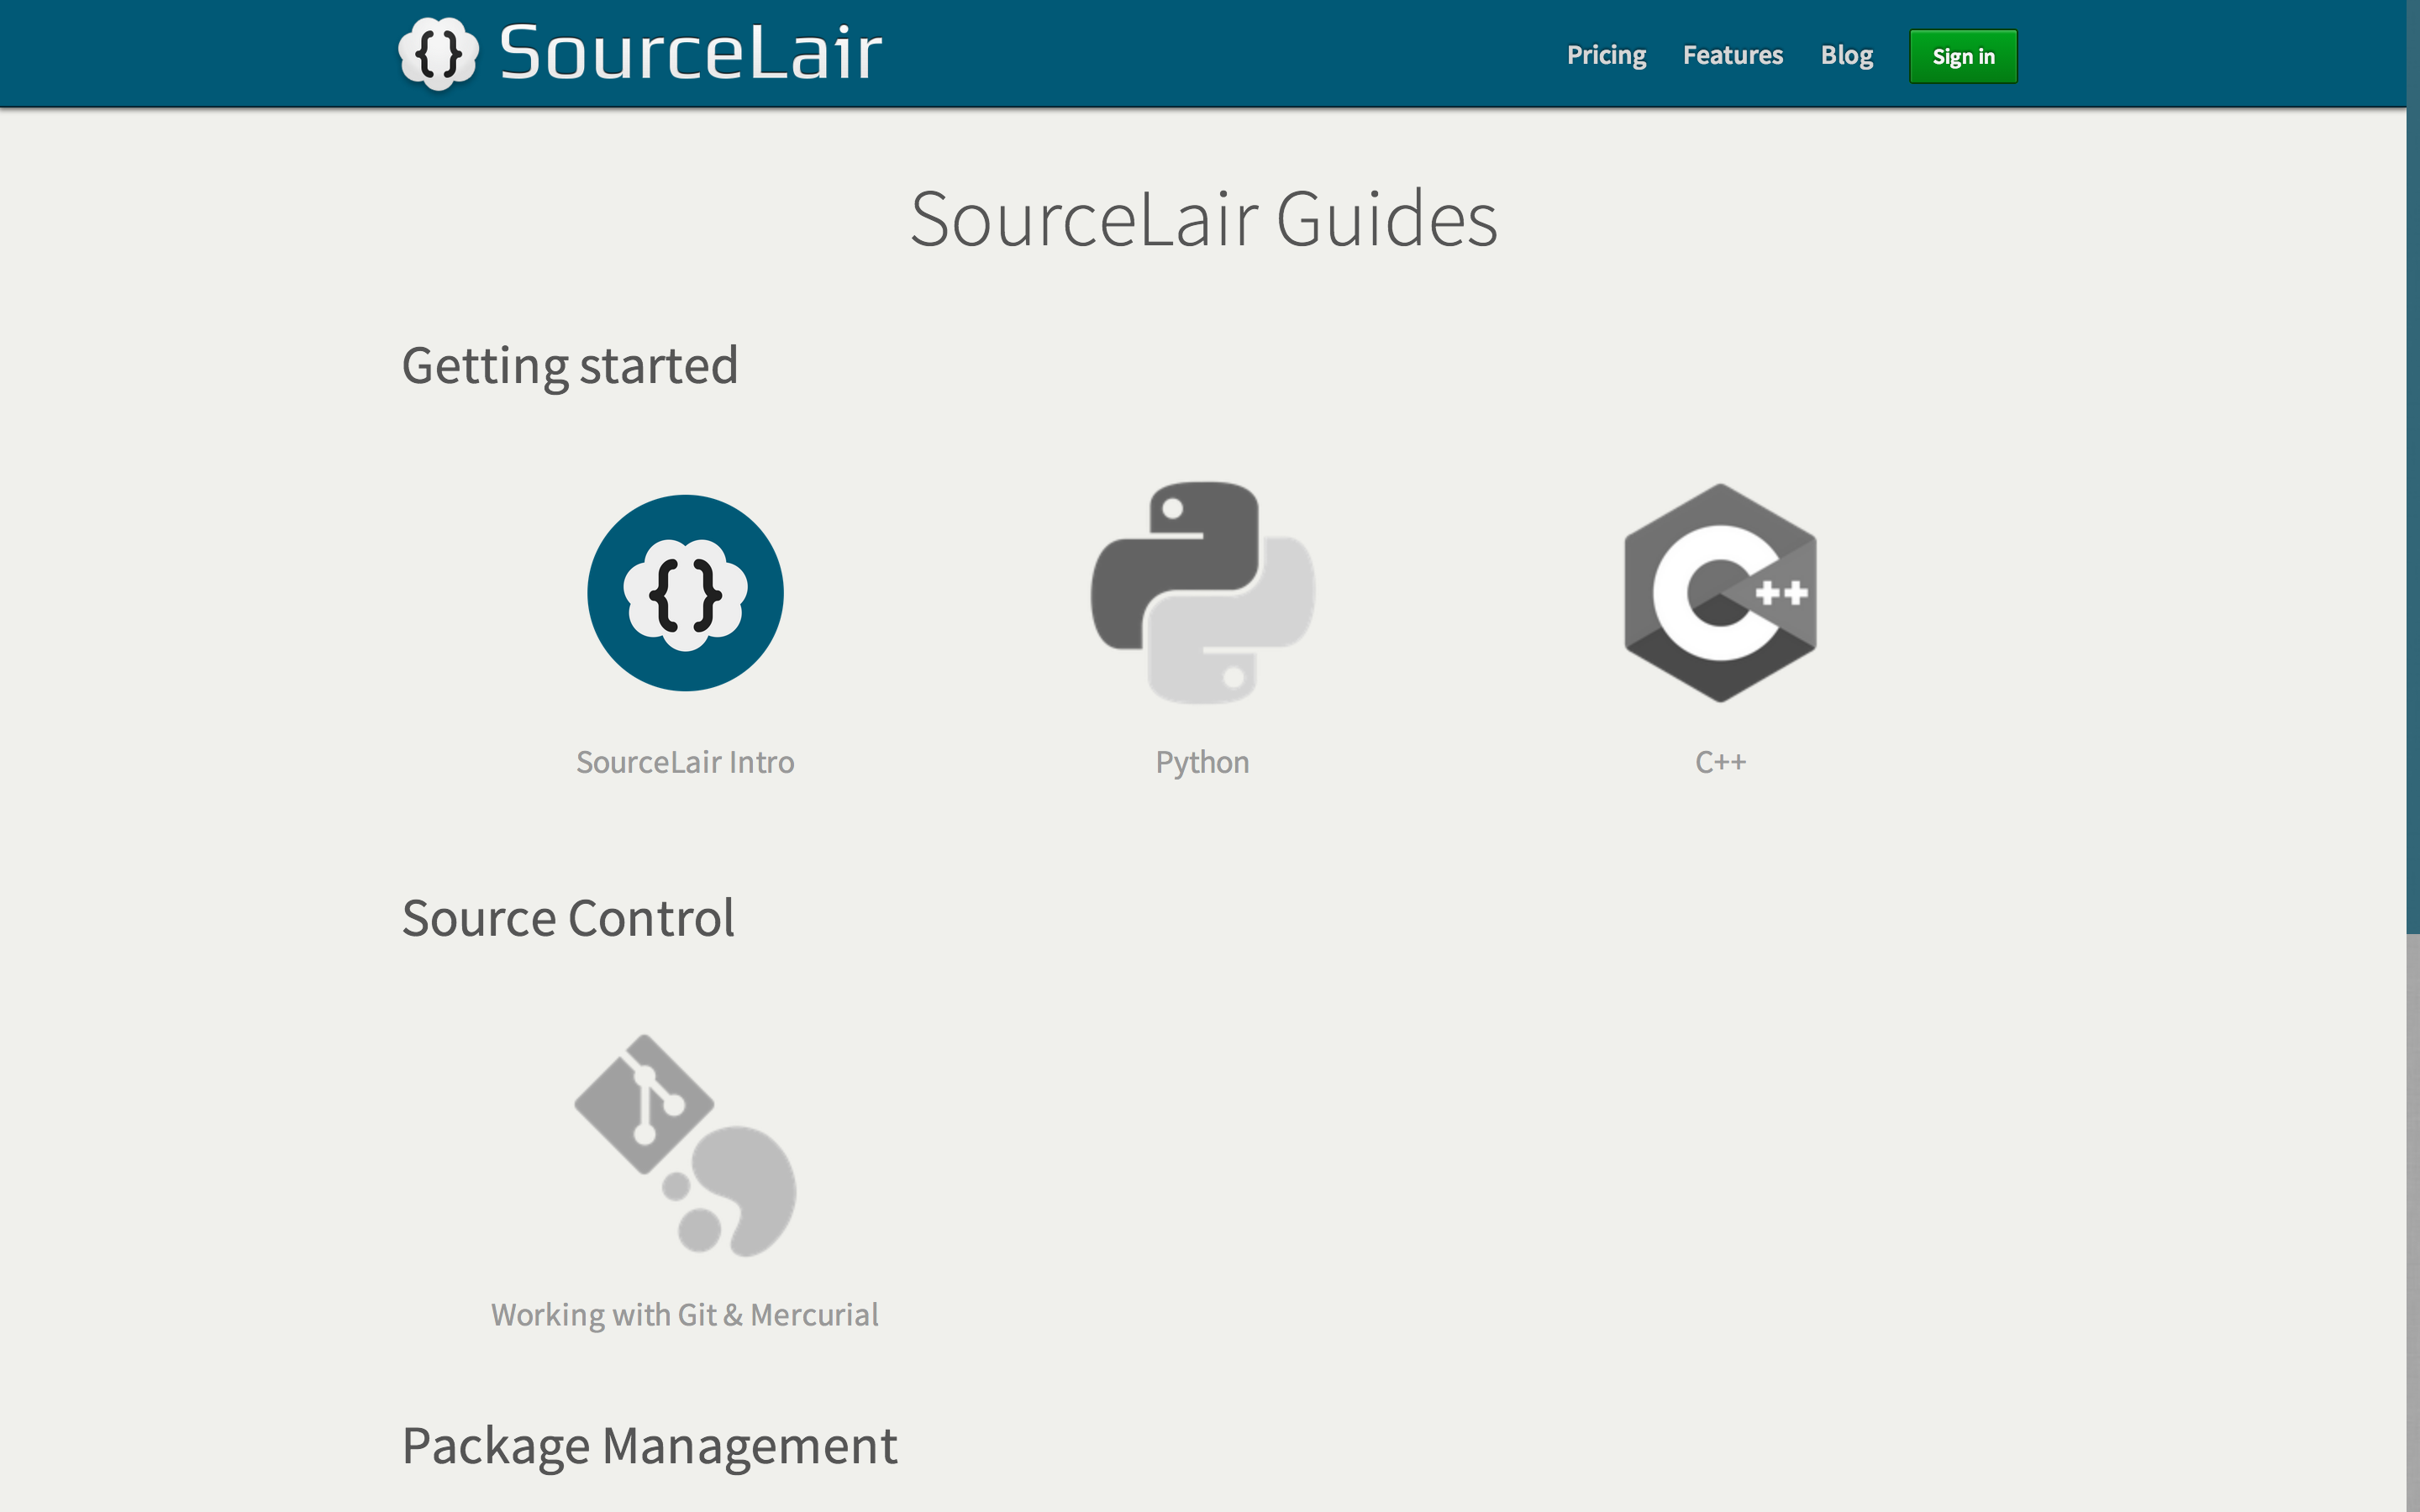 SourceLair Guides